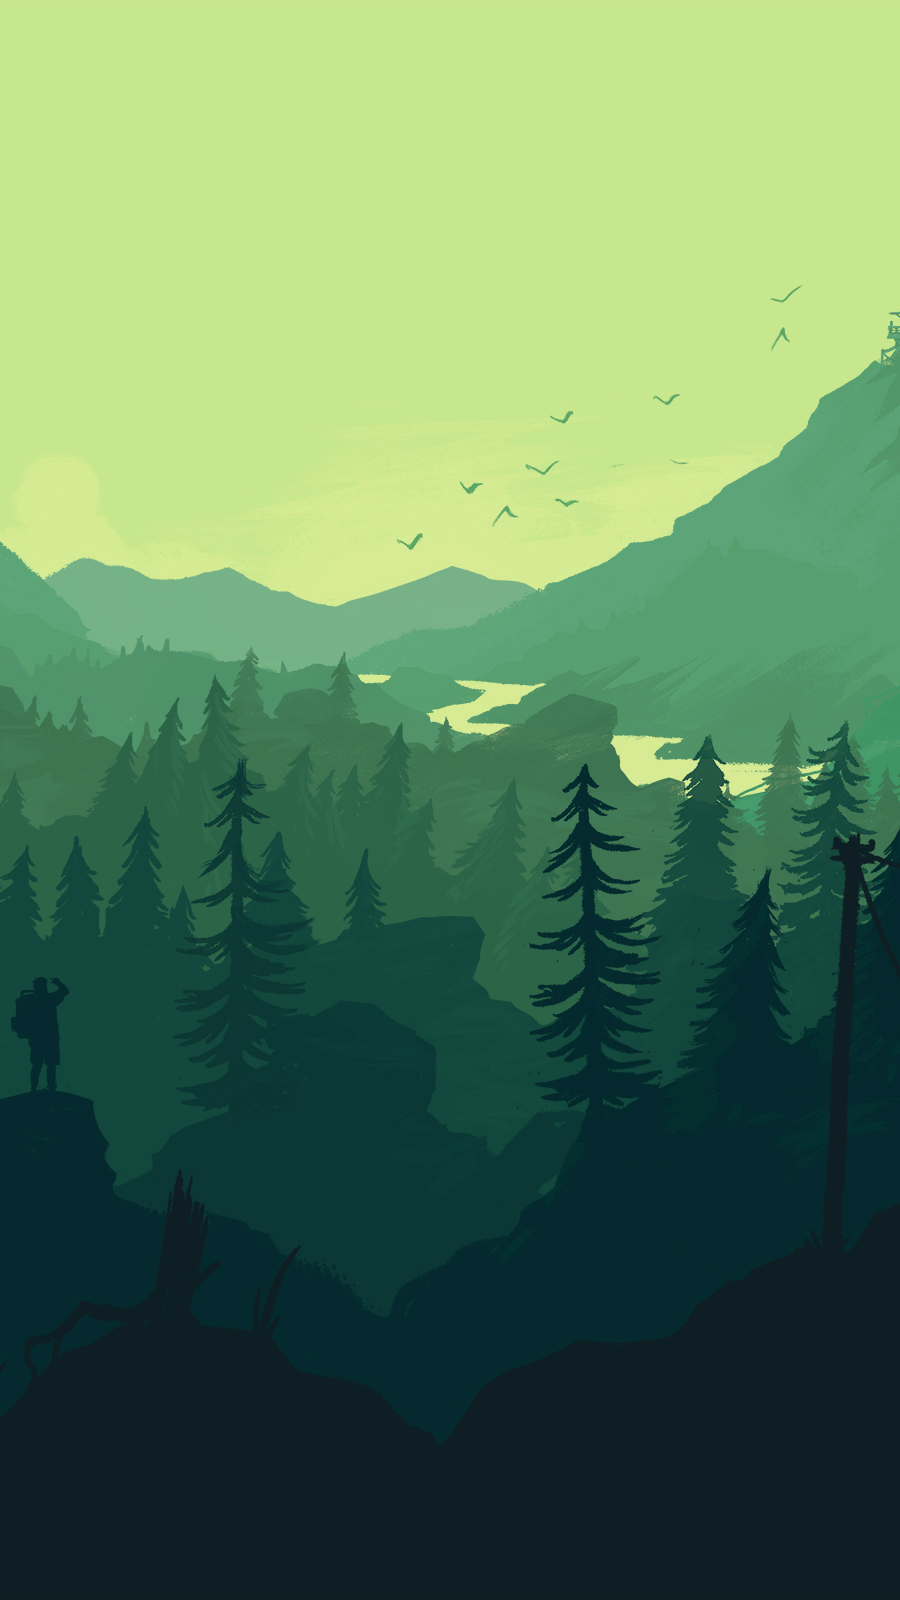 Firewatch Wallpaper Blue Google Search Art Wallpaper Scenery Wallpaper Minimalist Wallpaper